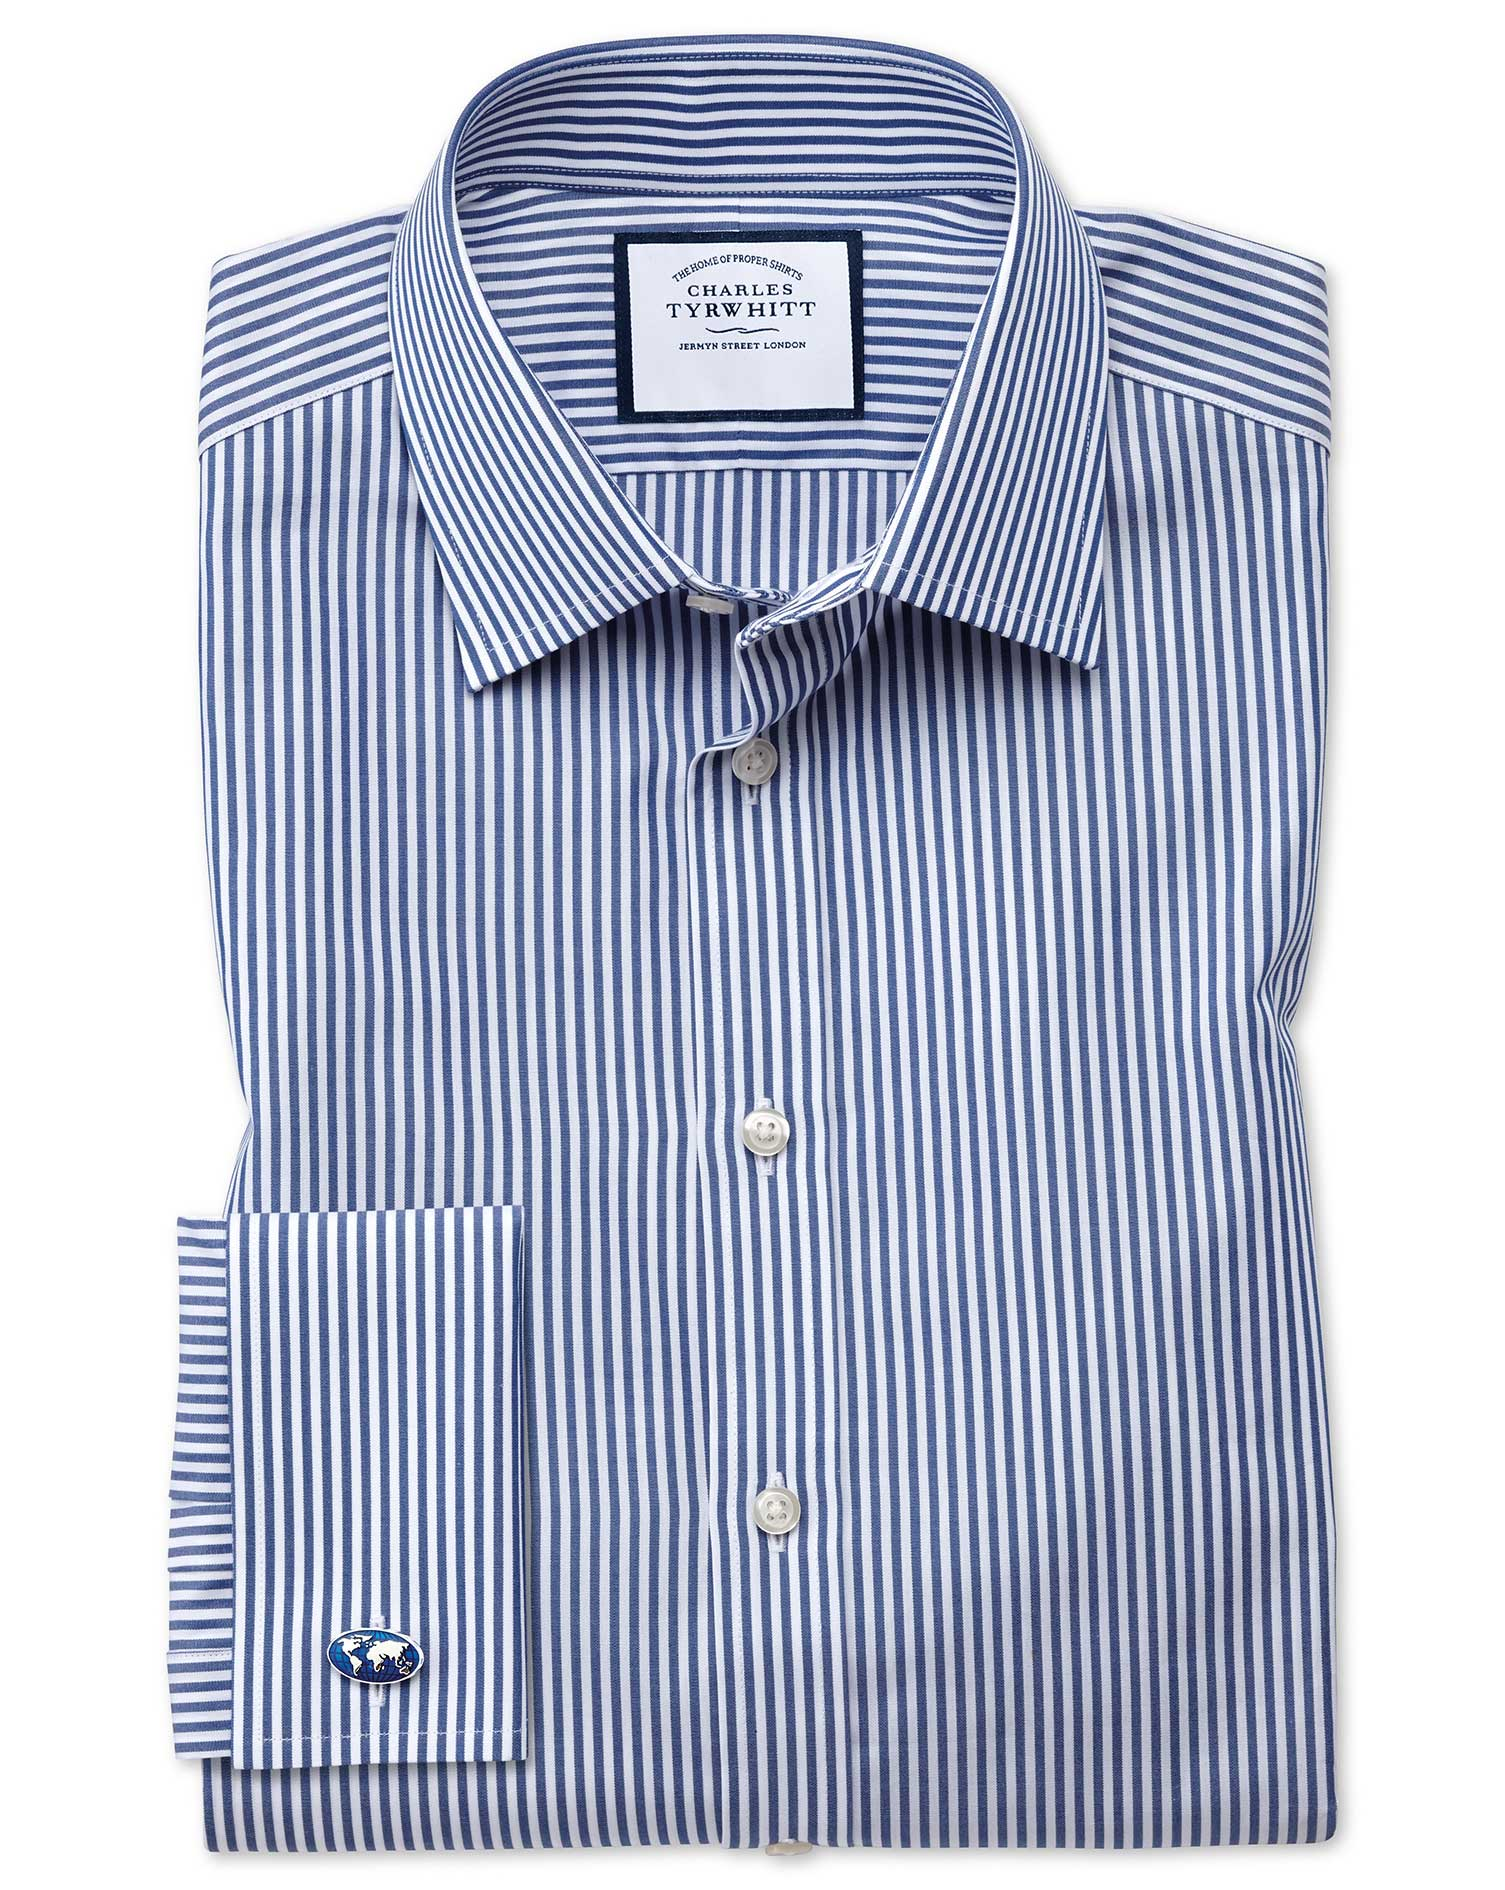 Extra Slim Fit Bengal Stripe Navy Blue Cotton Formal Shirt Double Cuff Size 17/36 by Charles Tyrwhit